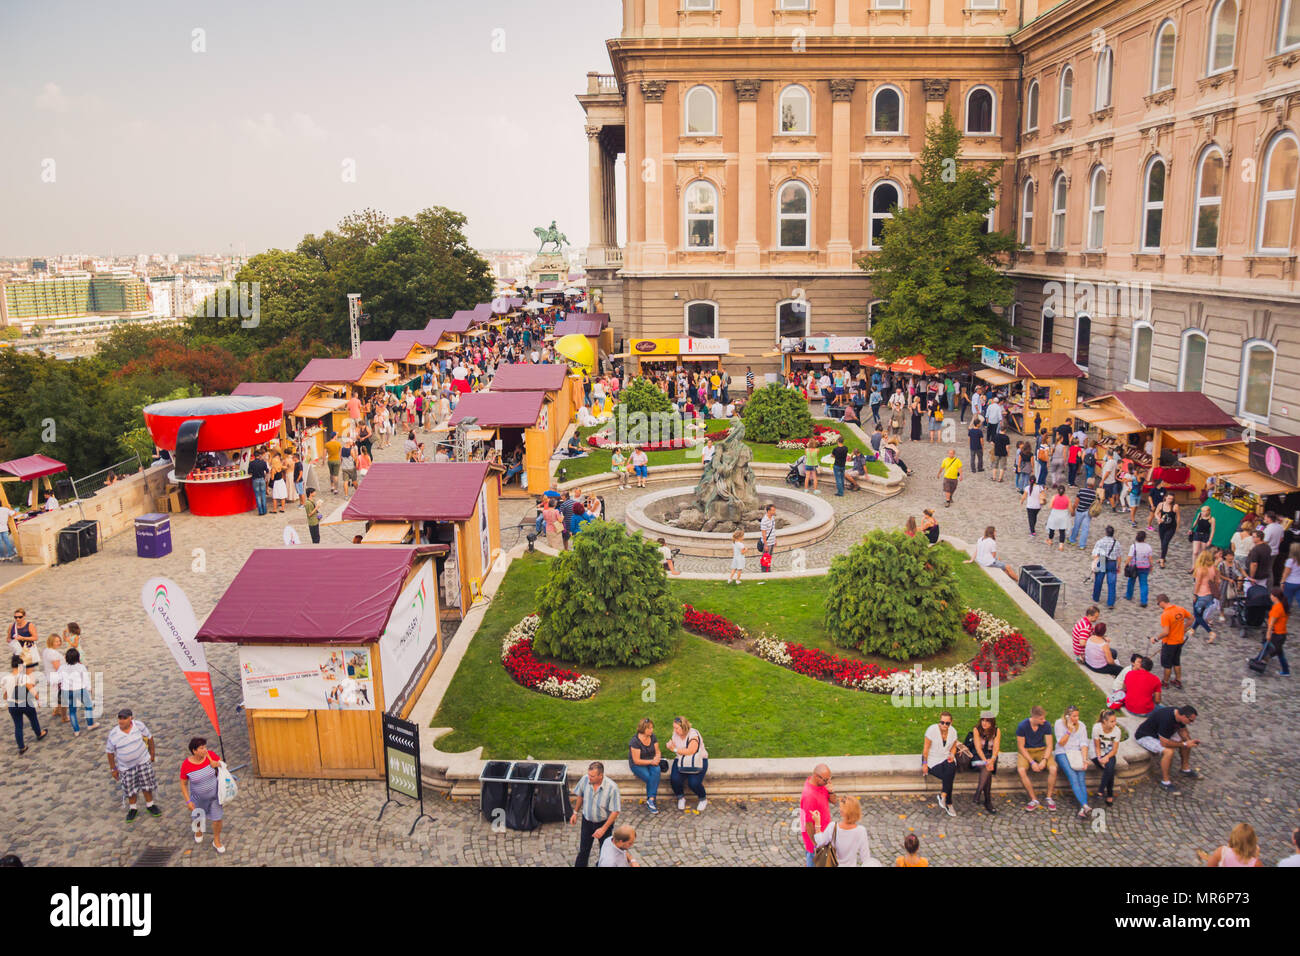 Budapest, Hungary - September 19, 2015: People visit at 'Sweet Days - Chocolate and Candy Festival' that occurred on the dates 18-20.9.15 in Buda Cast - Stock Image